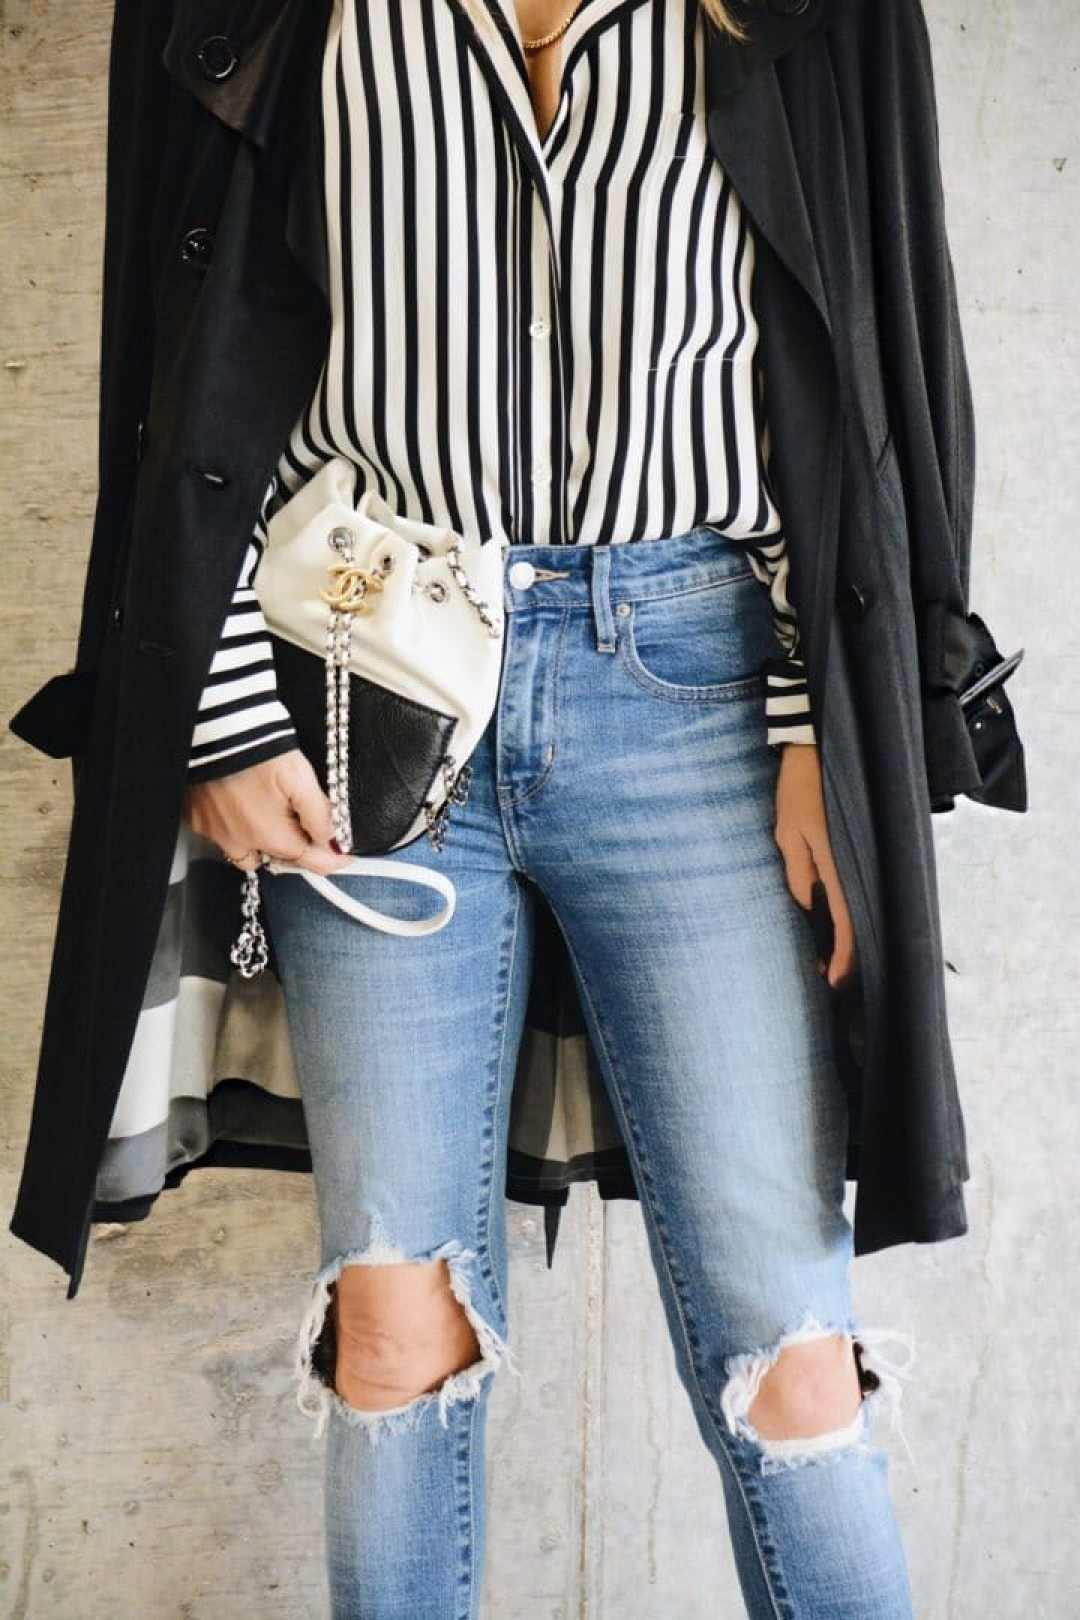 Black and White Blouse with Stripes, Chanel Black and White Bag, Distressed Denim and Black Coat Style by Her Fashioned Life